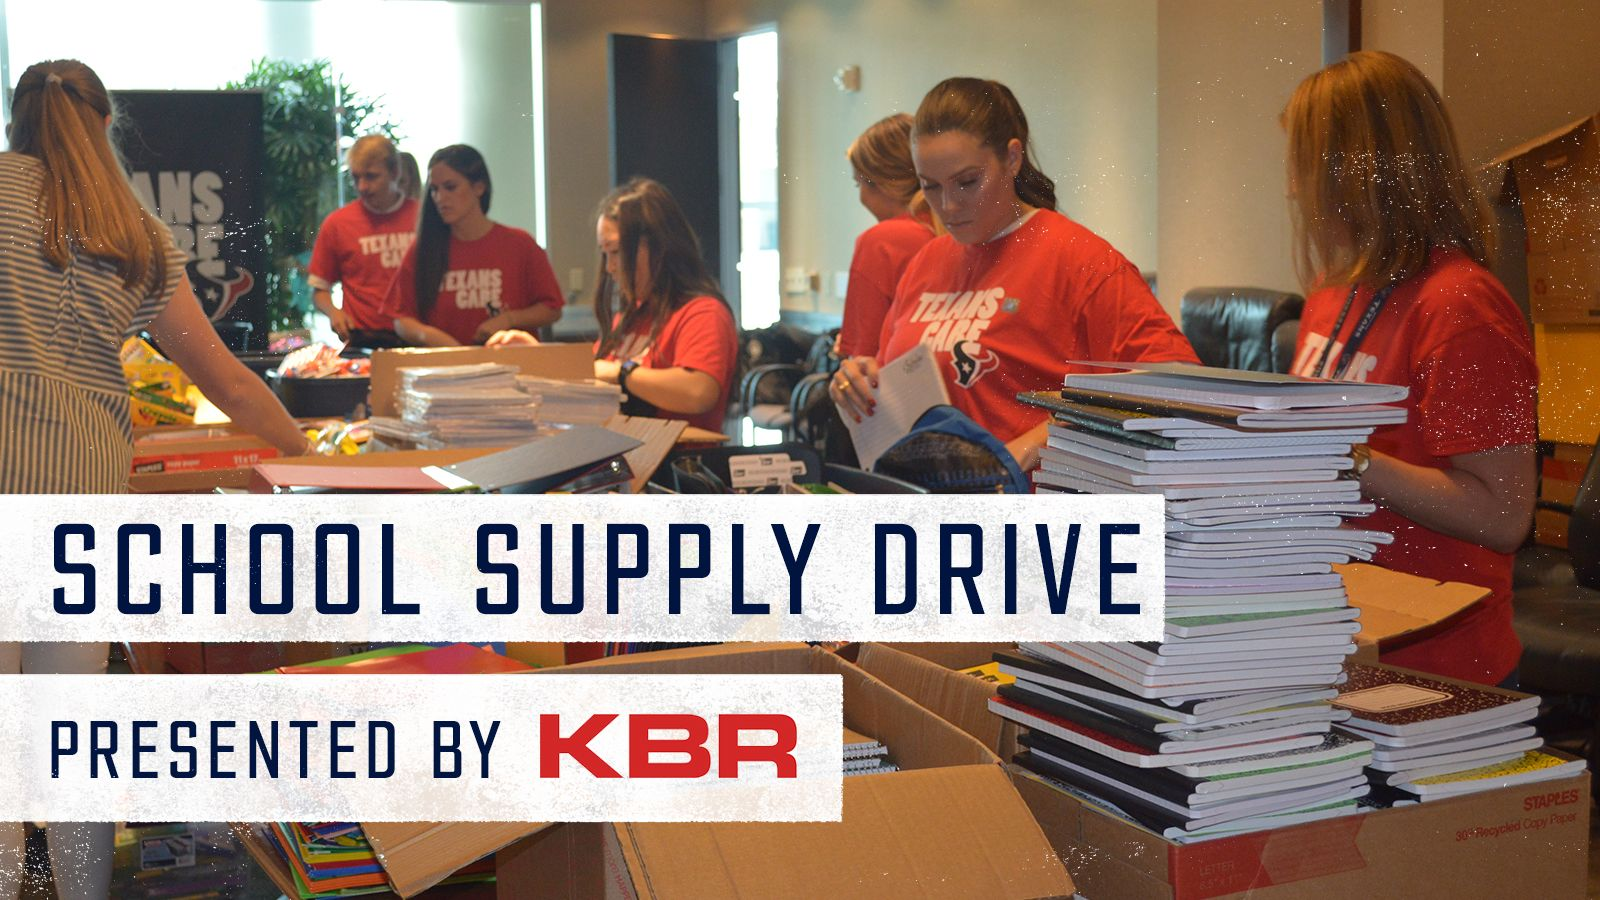 School Supply Drive. Presented by KBR